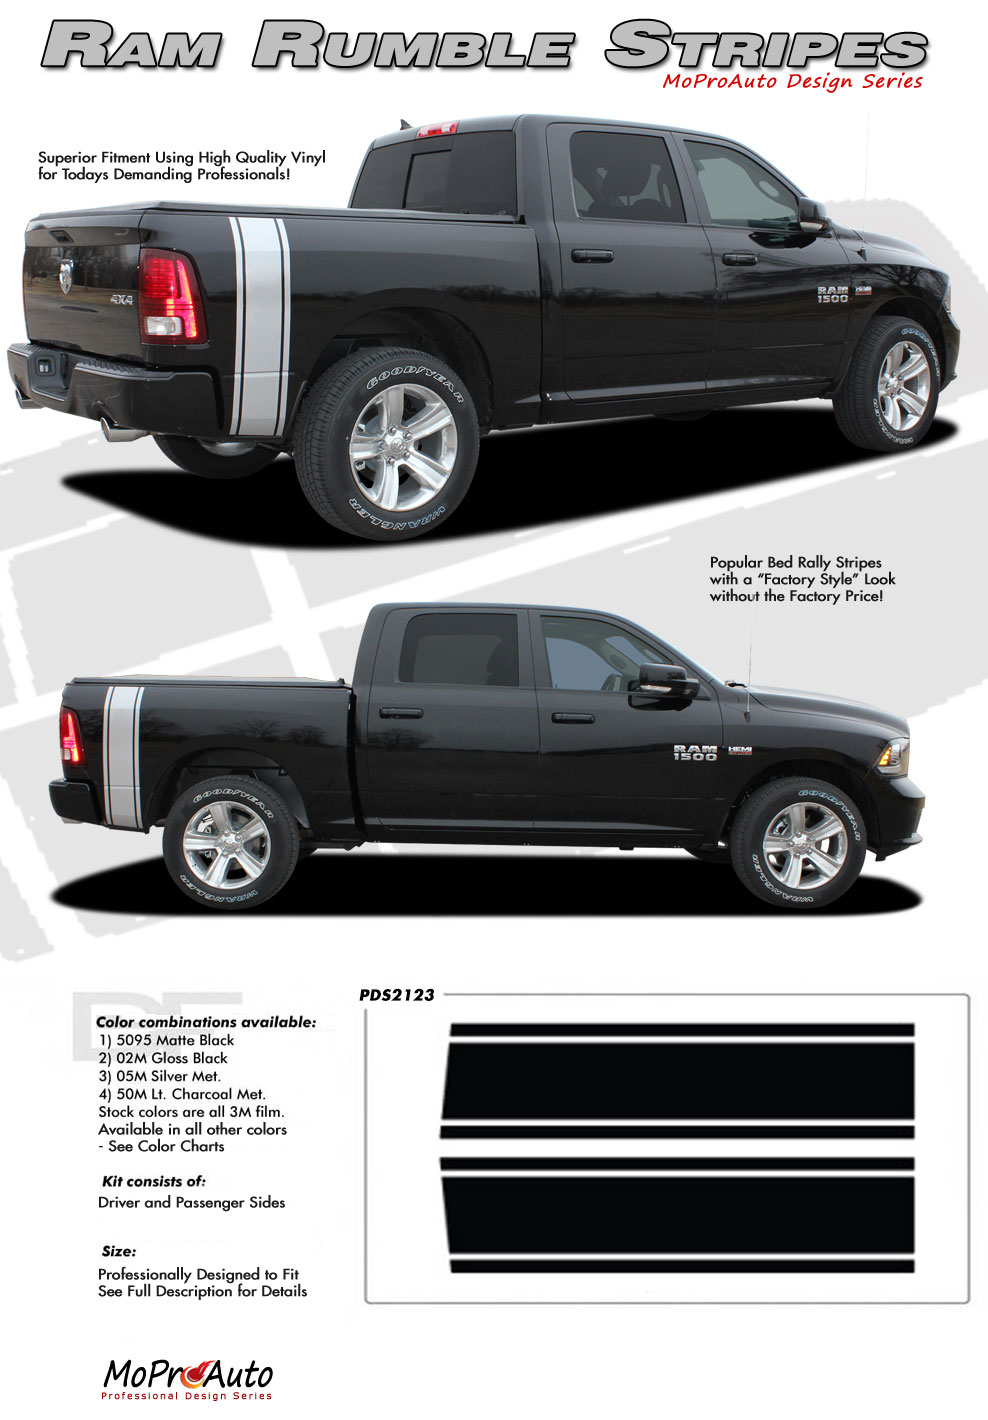 DODGE RAM RUMBLE BED STRIPES OEM FACTORY MOPAR STYLE MoProAuto Pro Design Series Vinyl Graphics and Decals Kit